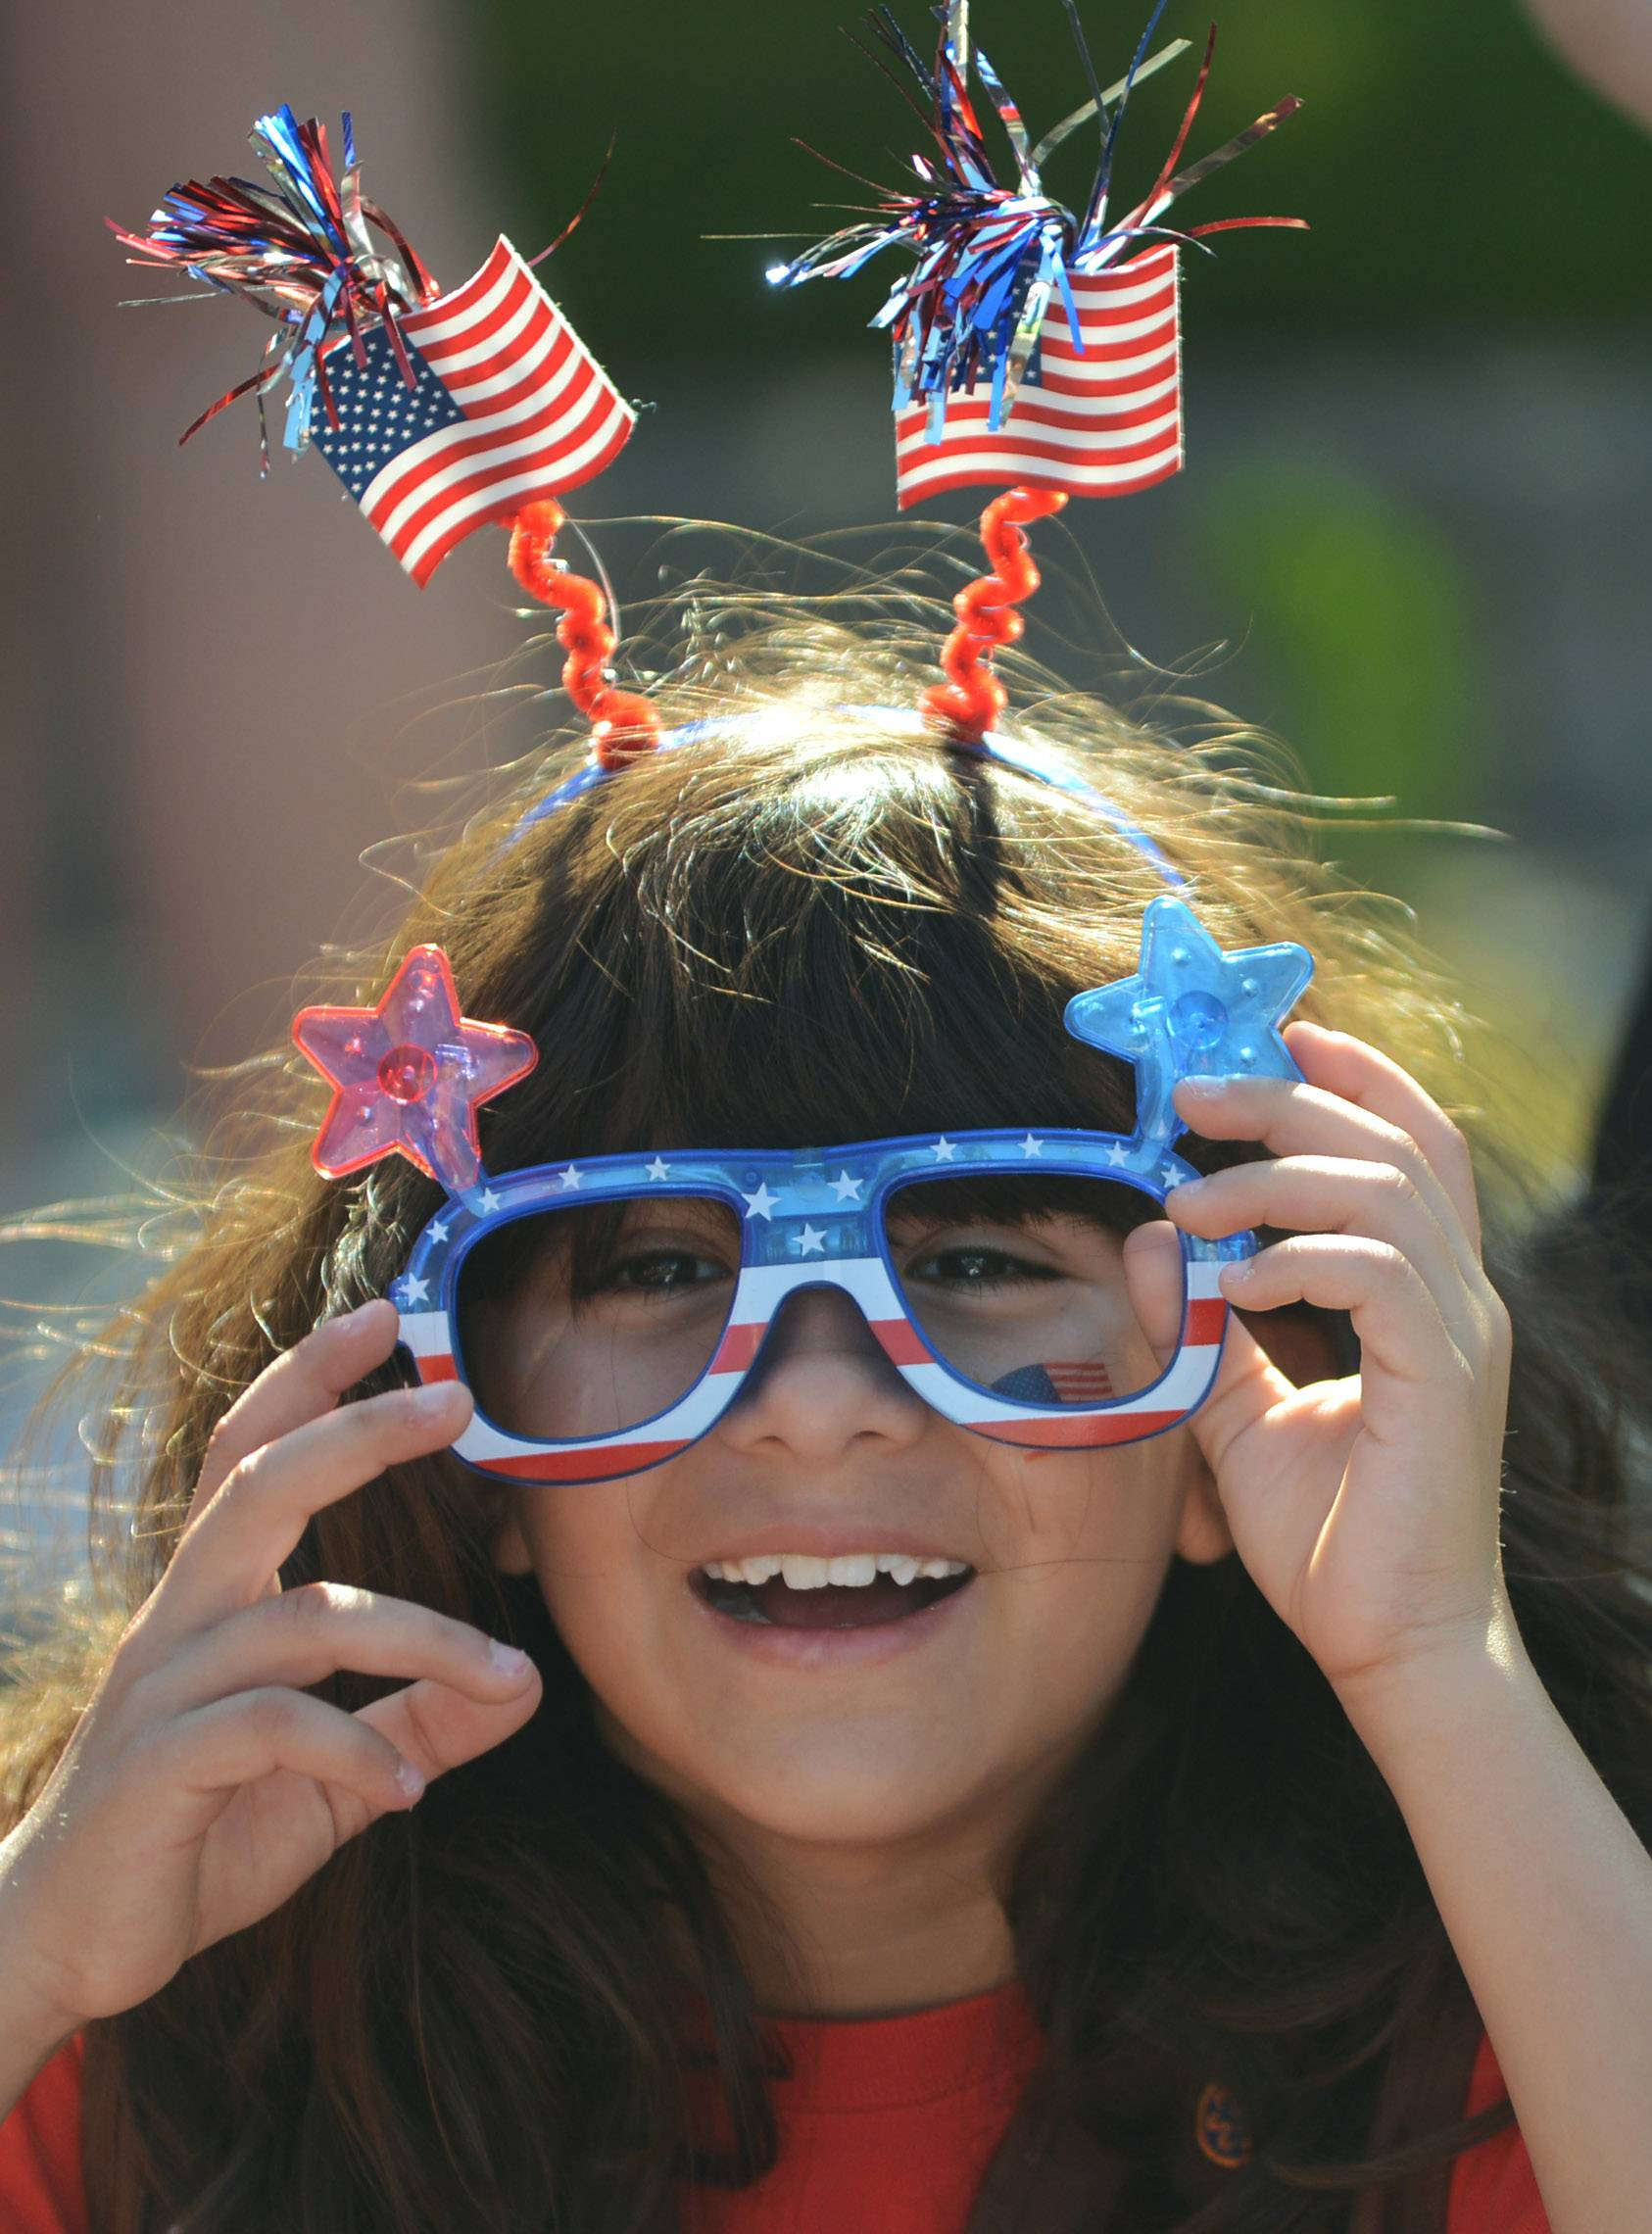 Carrie Adams, 8 of Mundelein, celebrates Fourth of July in style Friday in Vernon Hills.